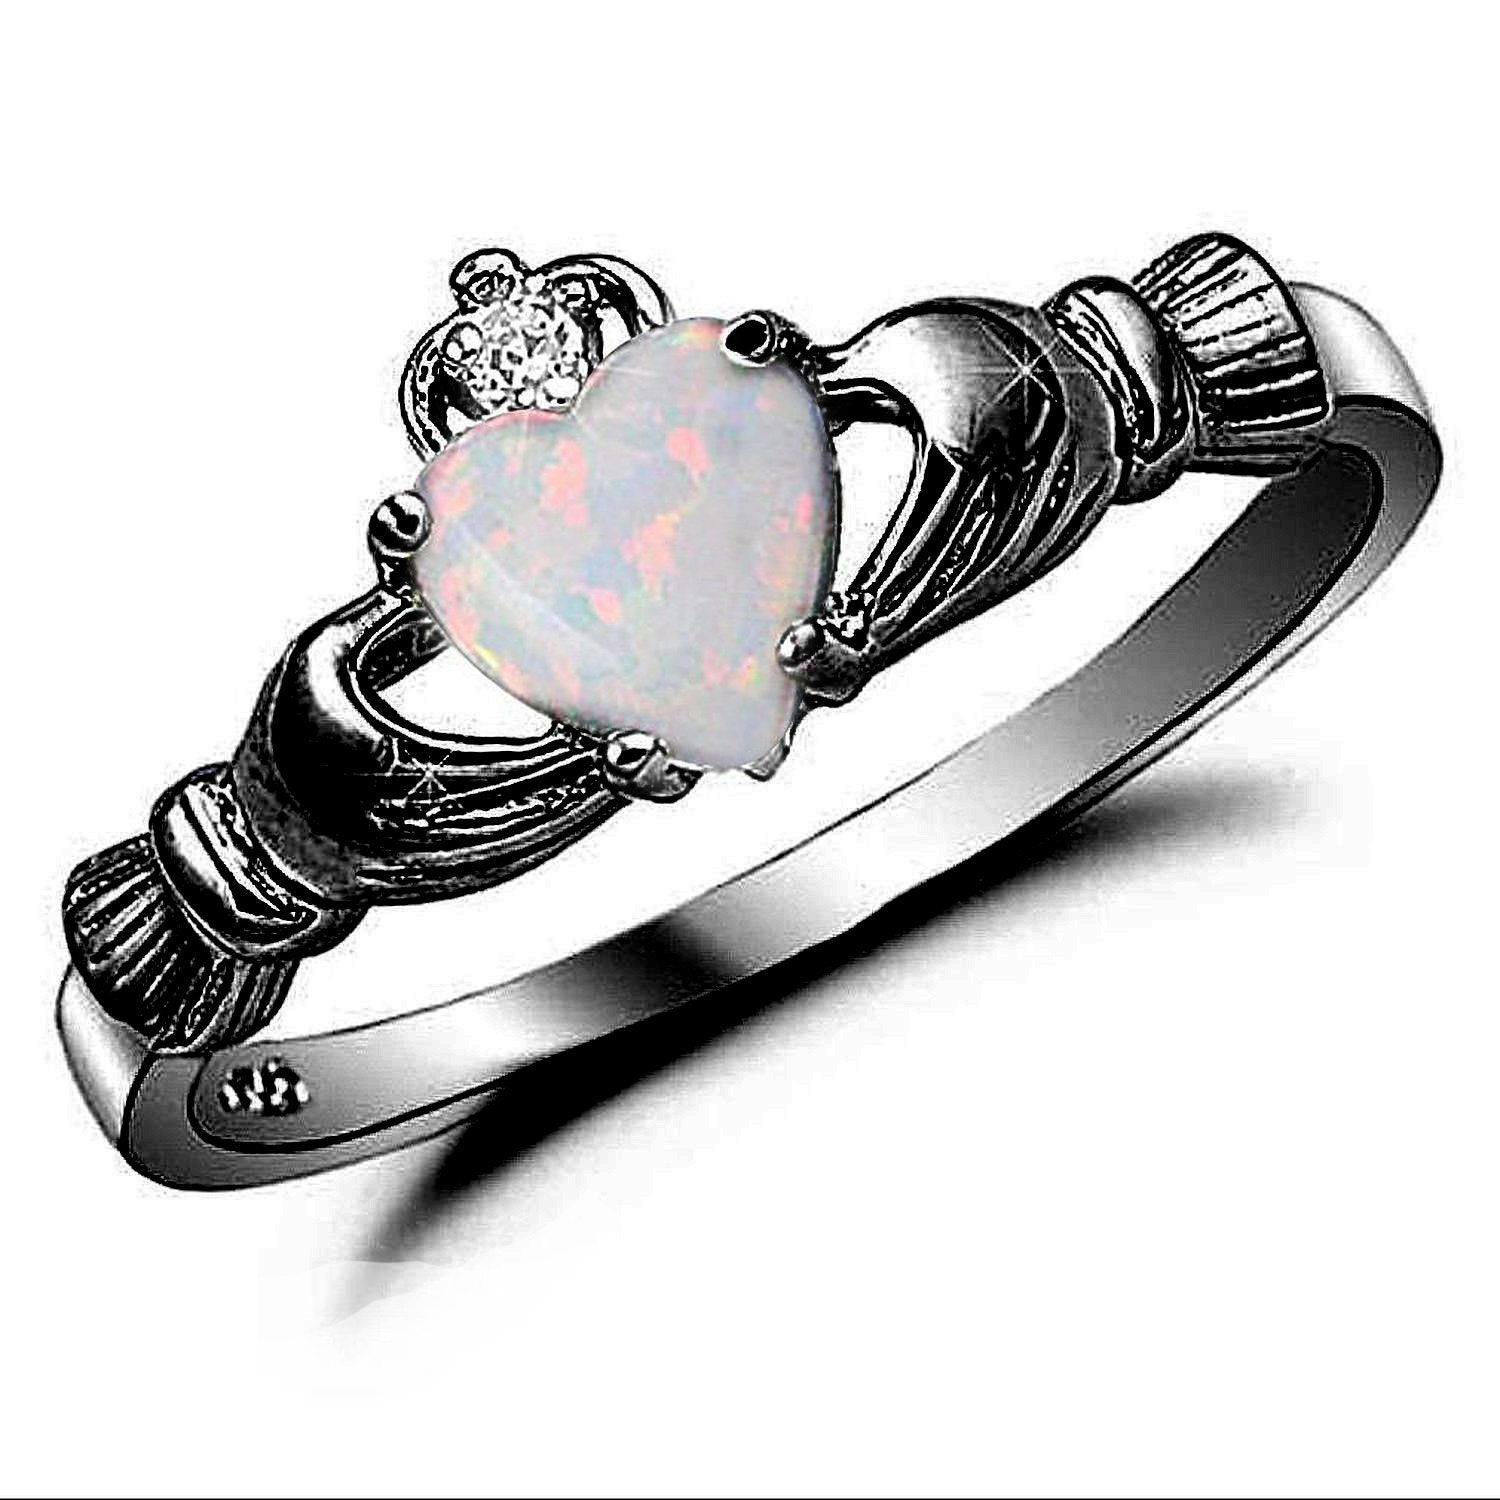 claddagh ring black gold 925 sterling silver by. Black Bedroom Furniture Sets. Home Design Ideas